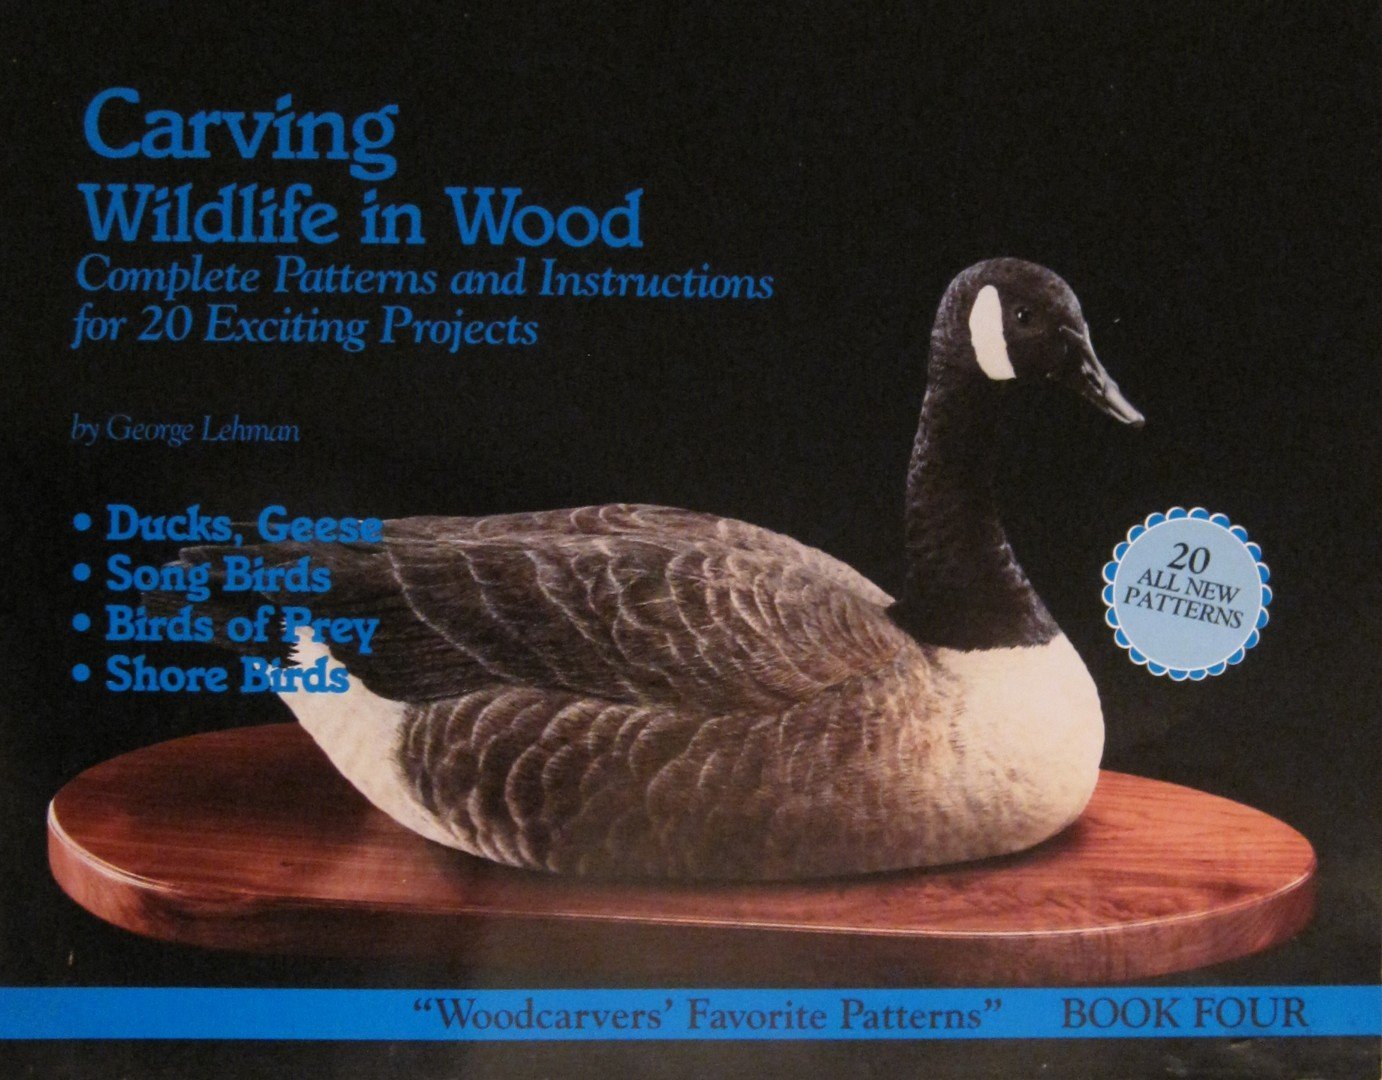 Carving Wildlife in Wood: Complete Patterns and Instructions for 20 Exciting Projects